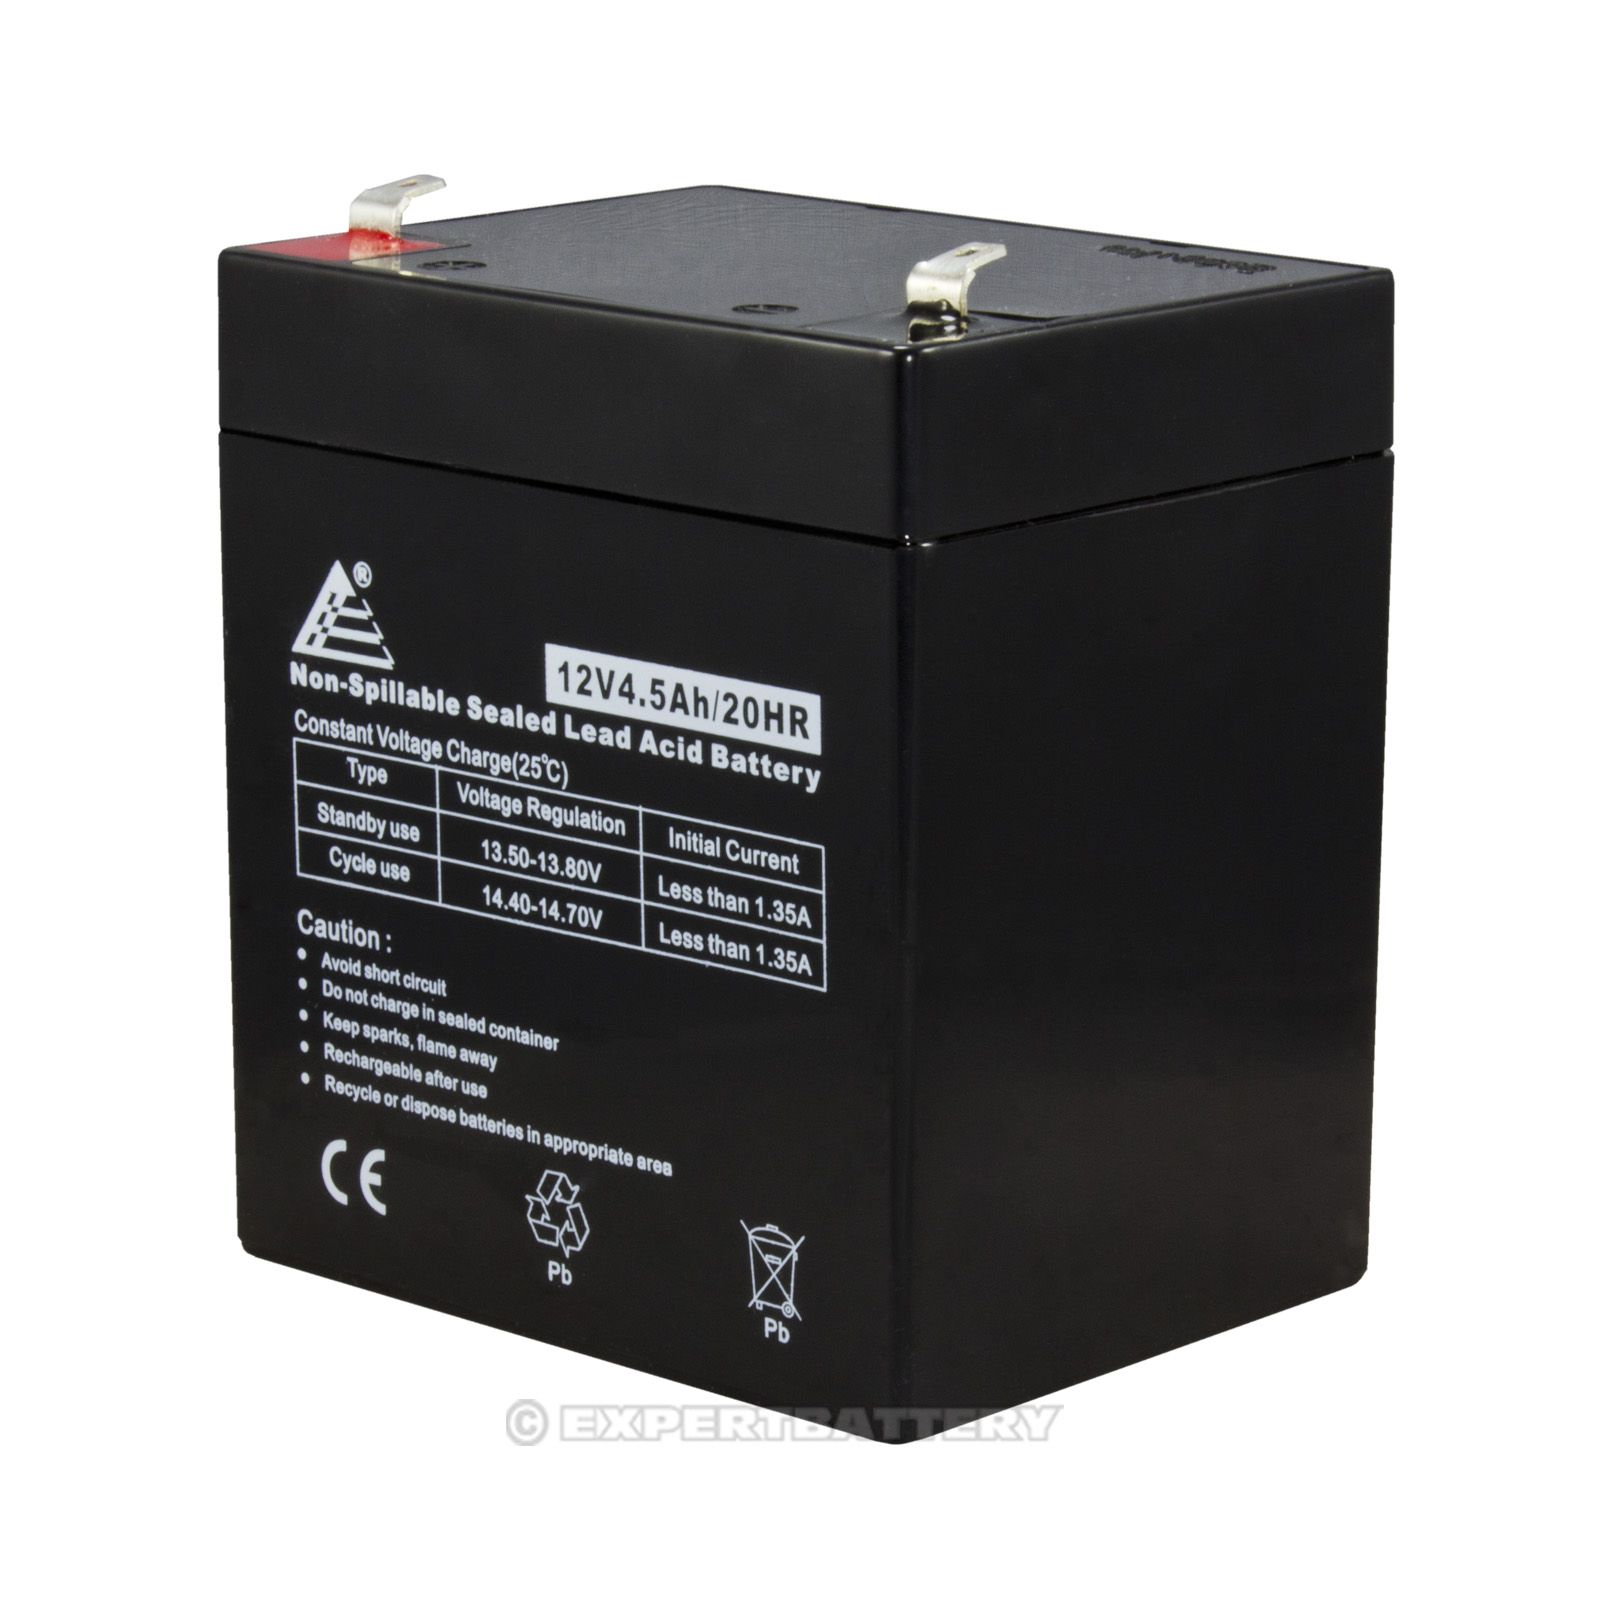 12v 4 5ah sealed lead acid sla replacement battery for apc ups ub1245 ebay. Black Bedroom Furniture Sets. Home Design Ideas